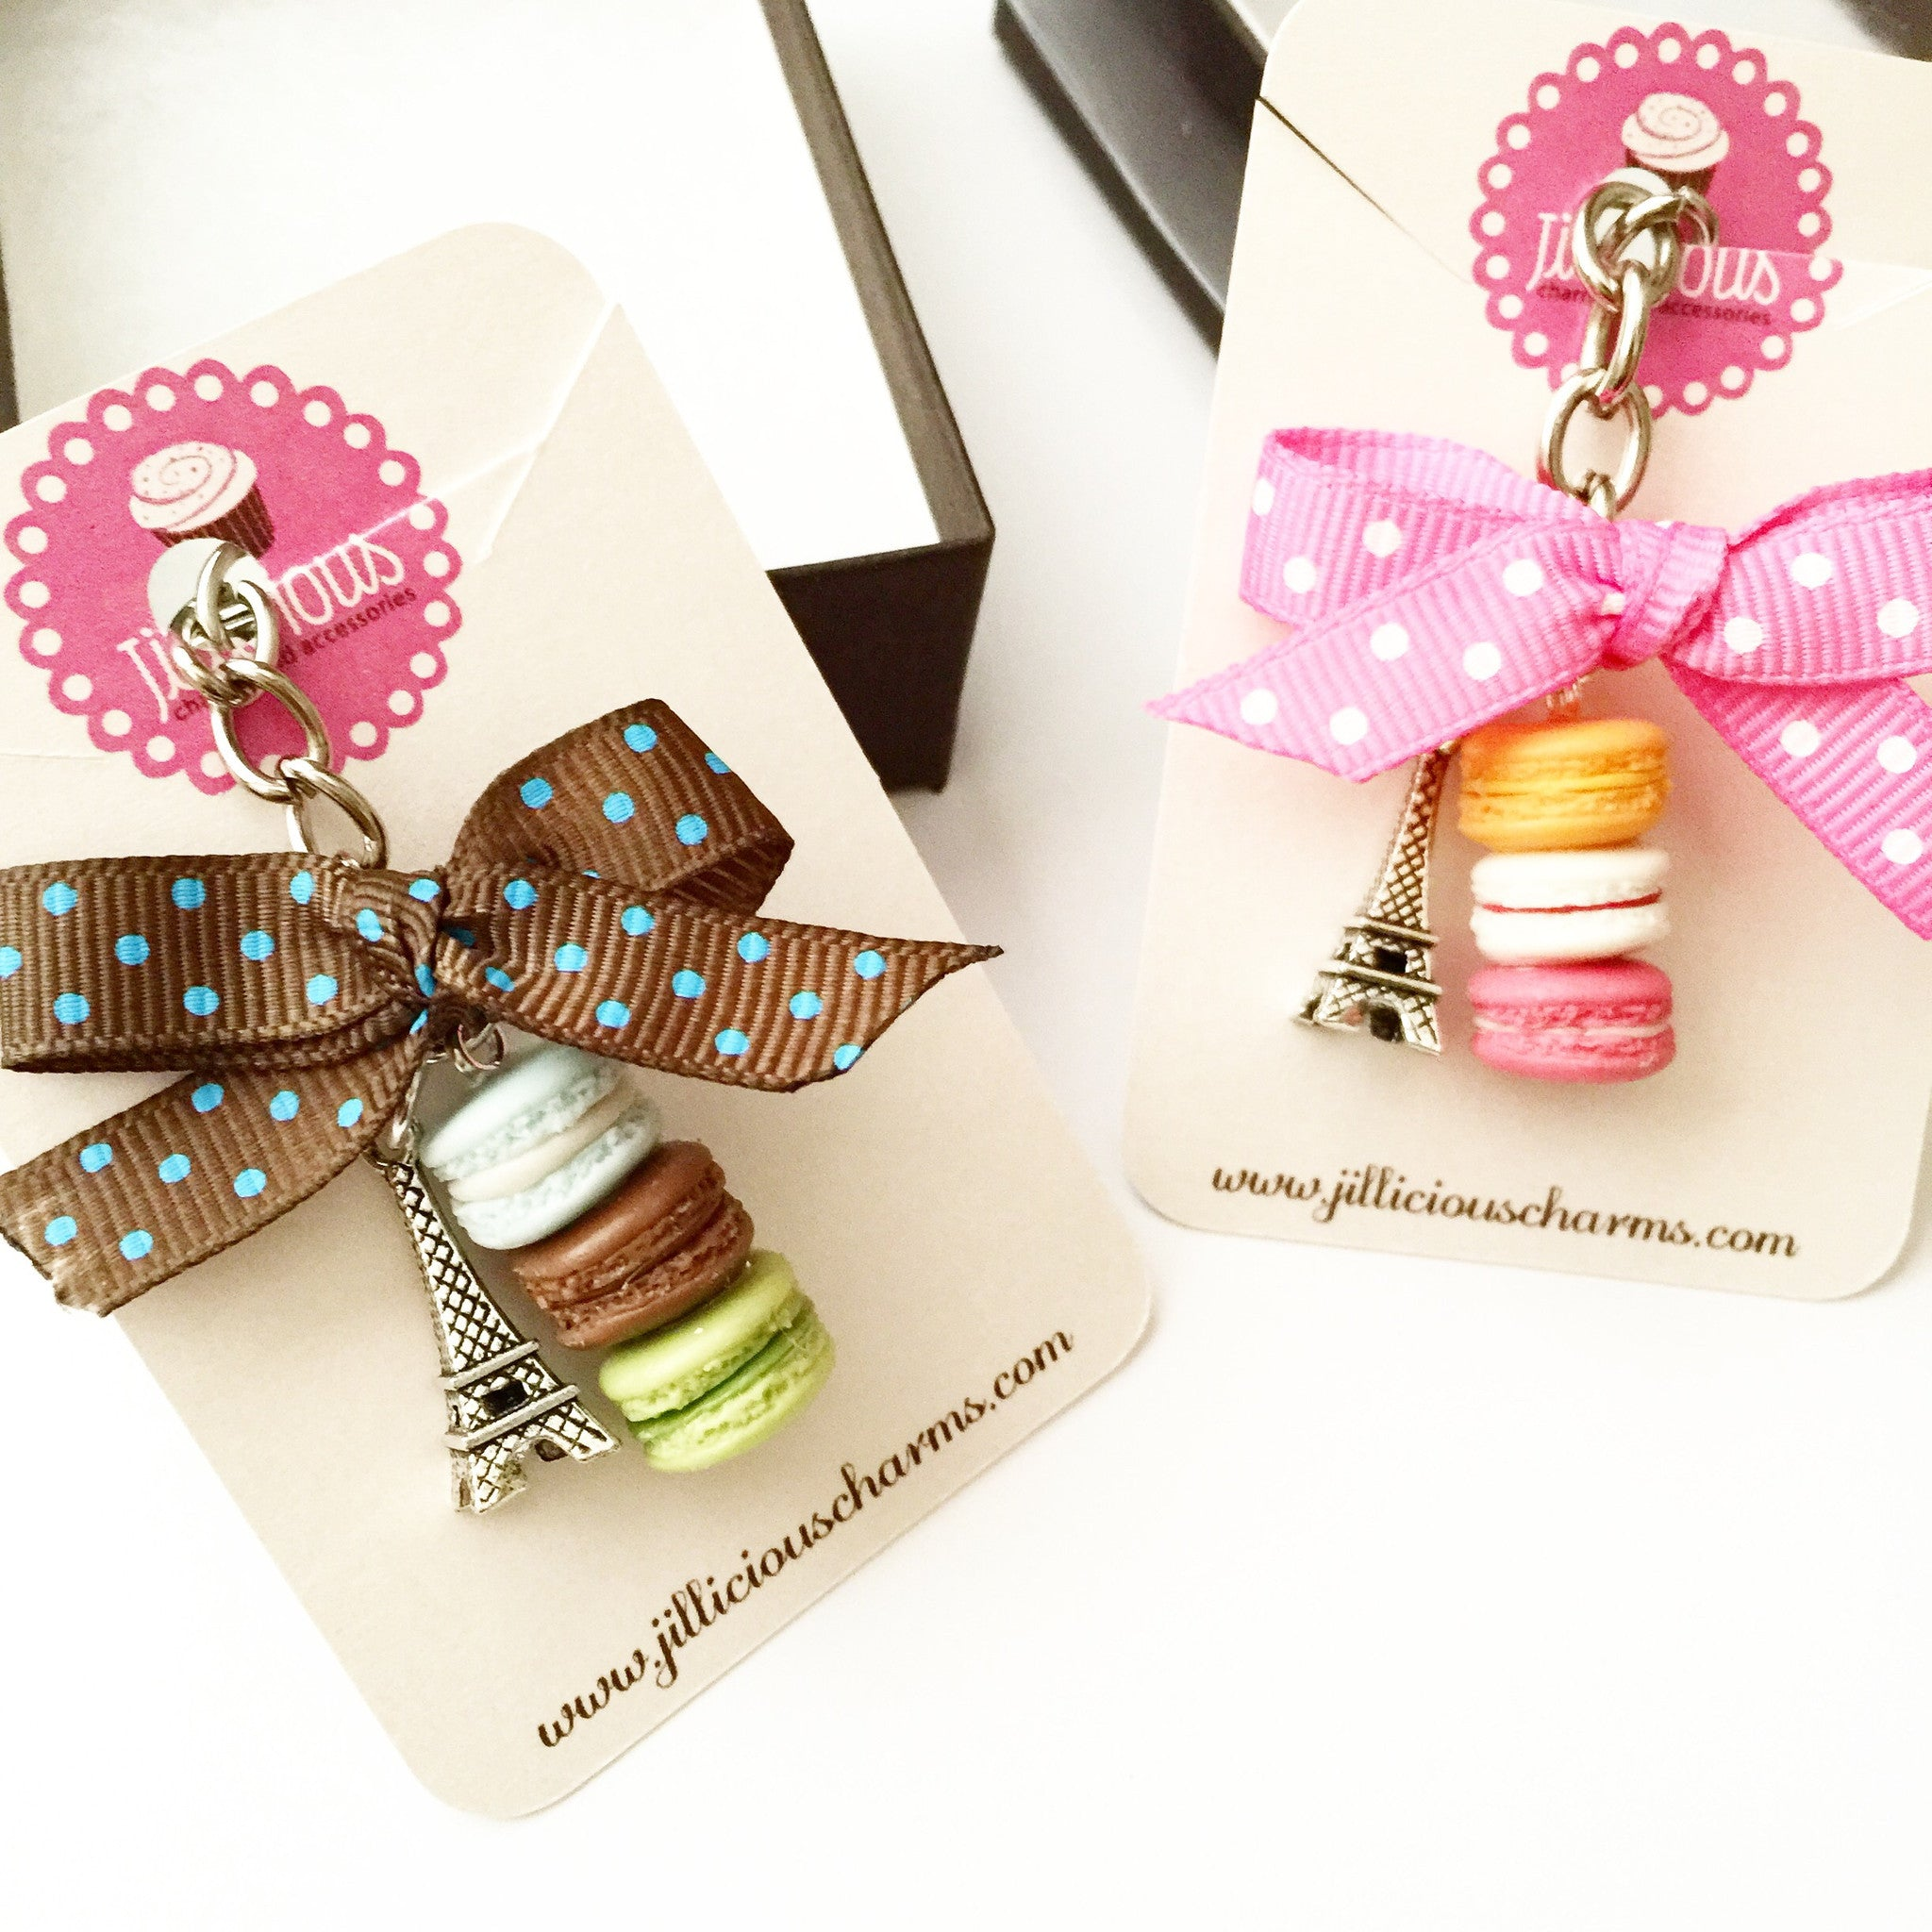 Parisian Themed Keychain - Jillicious charms and accessories - 6